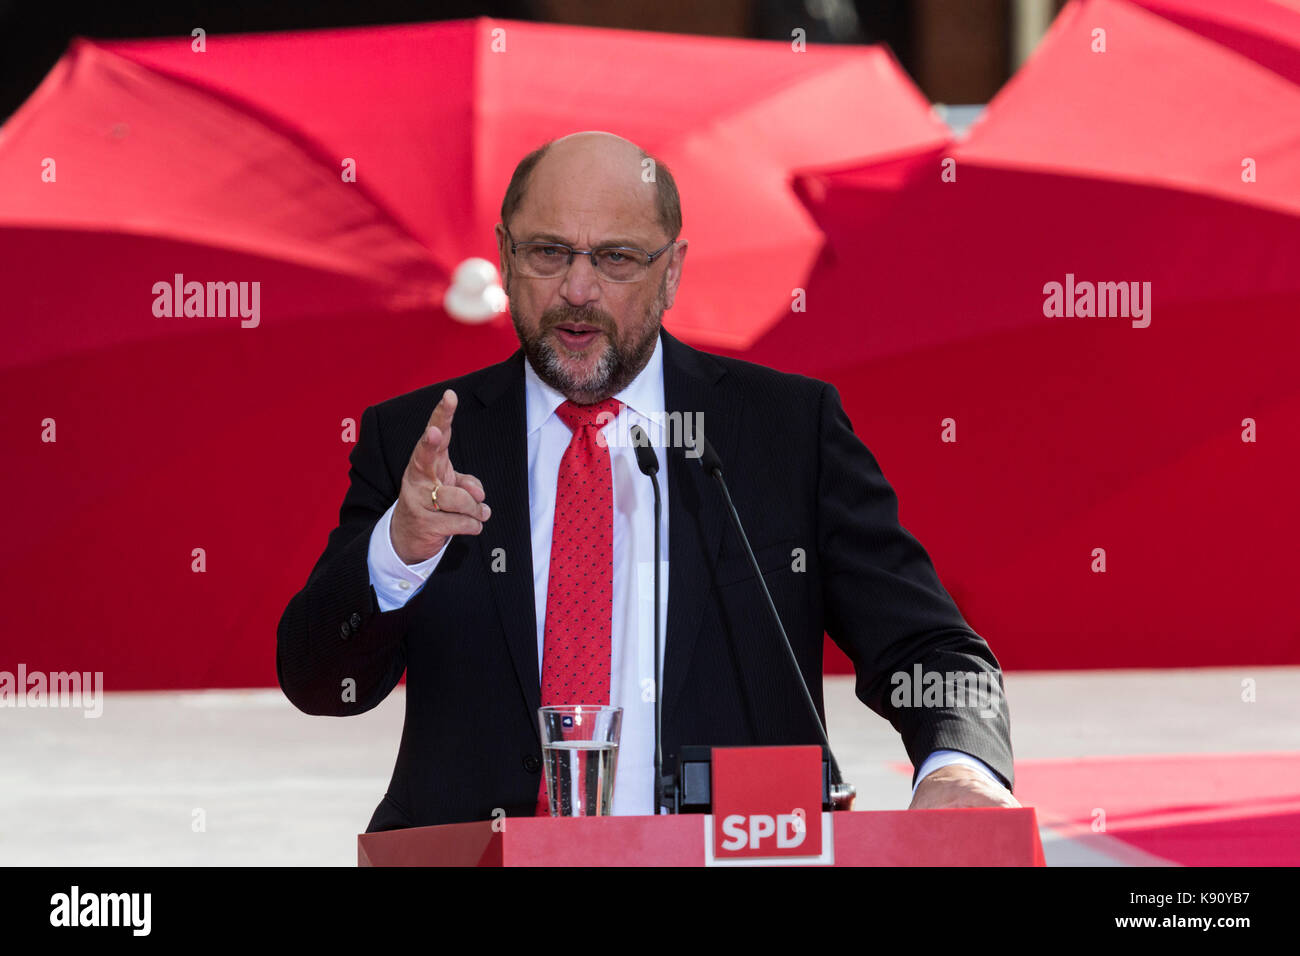 Gelsenkirchen, Germany. 20 September 2017. Leader of the SPD (Social Democrats) and in the running to become the - Stock Image